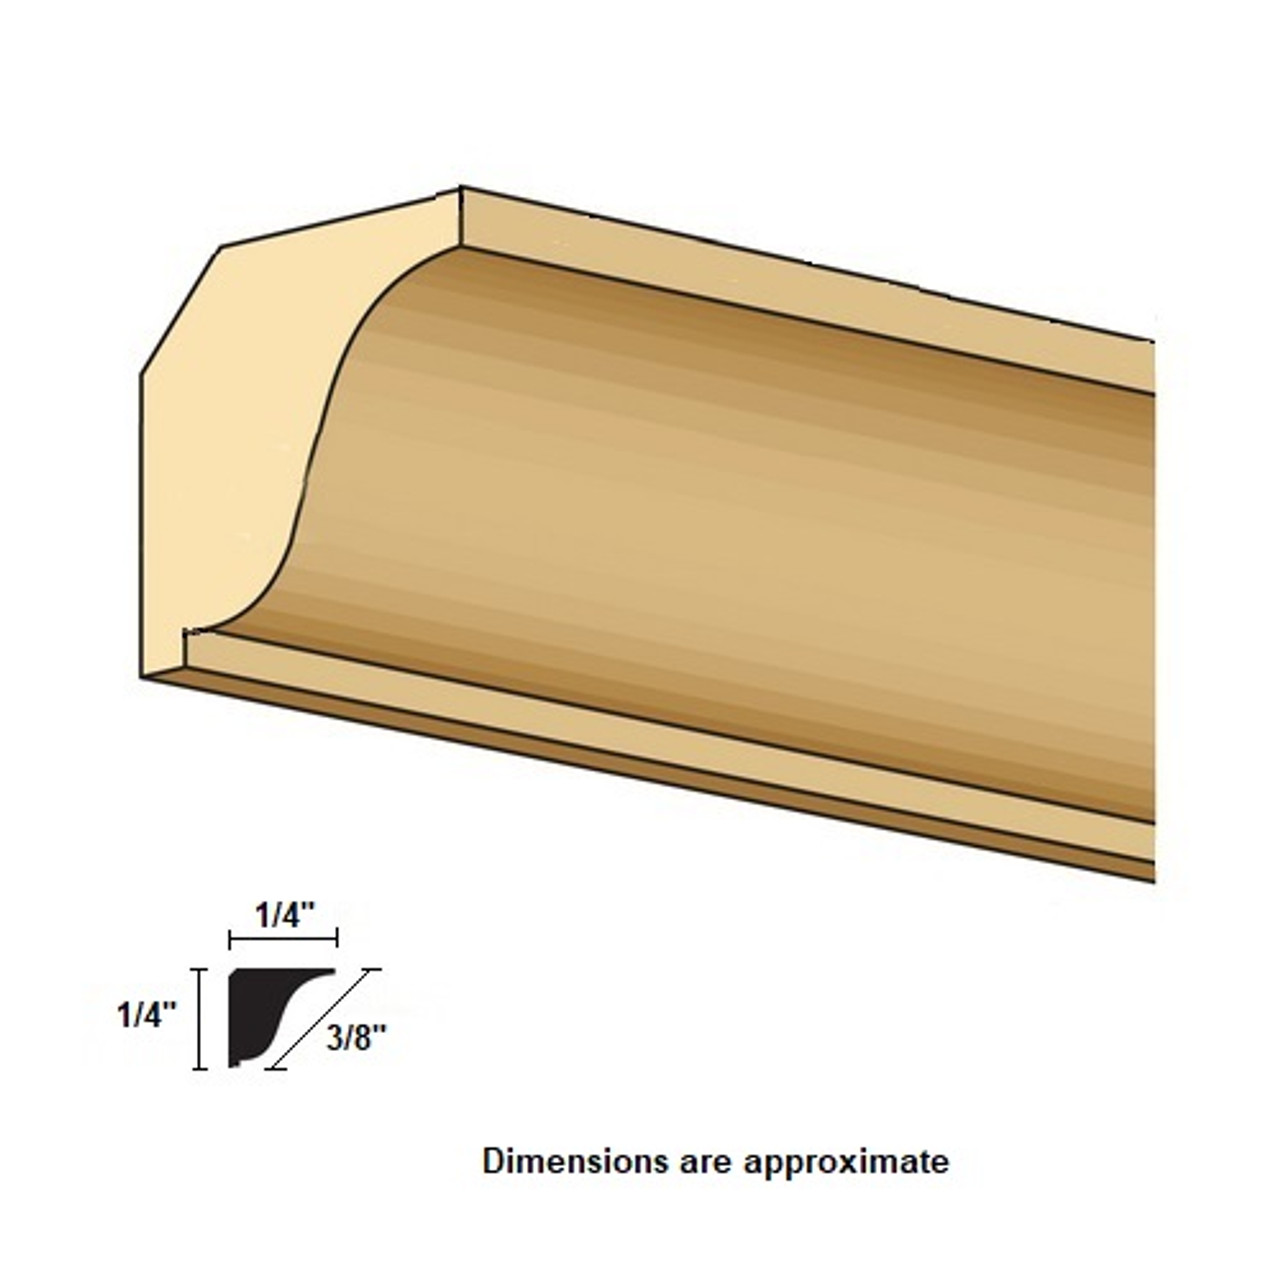 Illustration of CLA77069 small crown molding with profile cut out